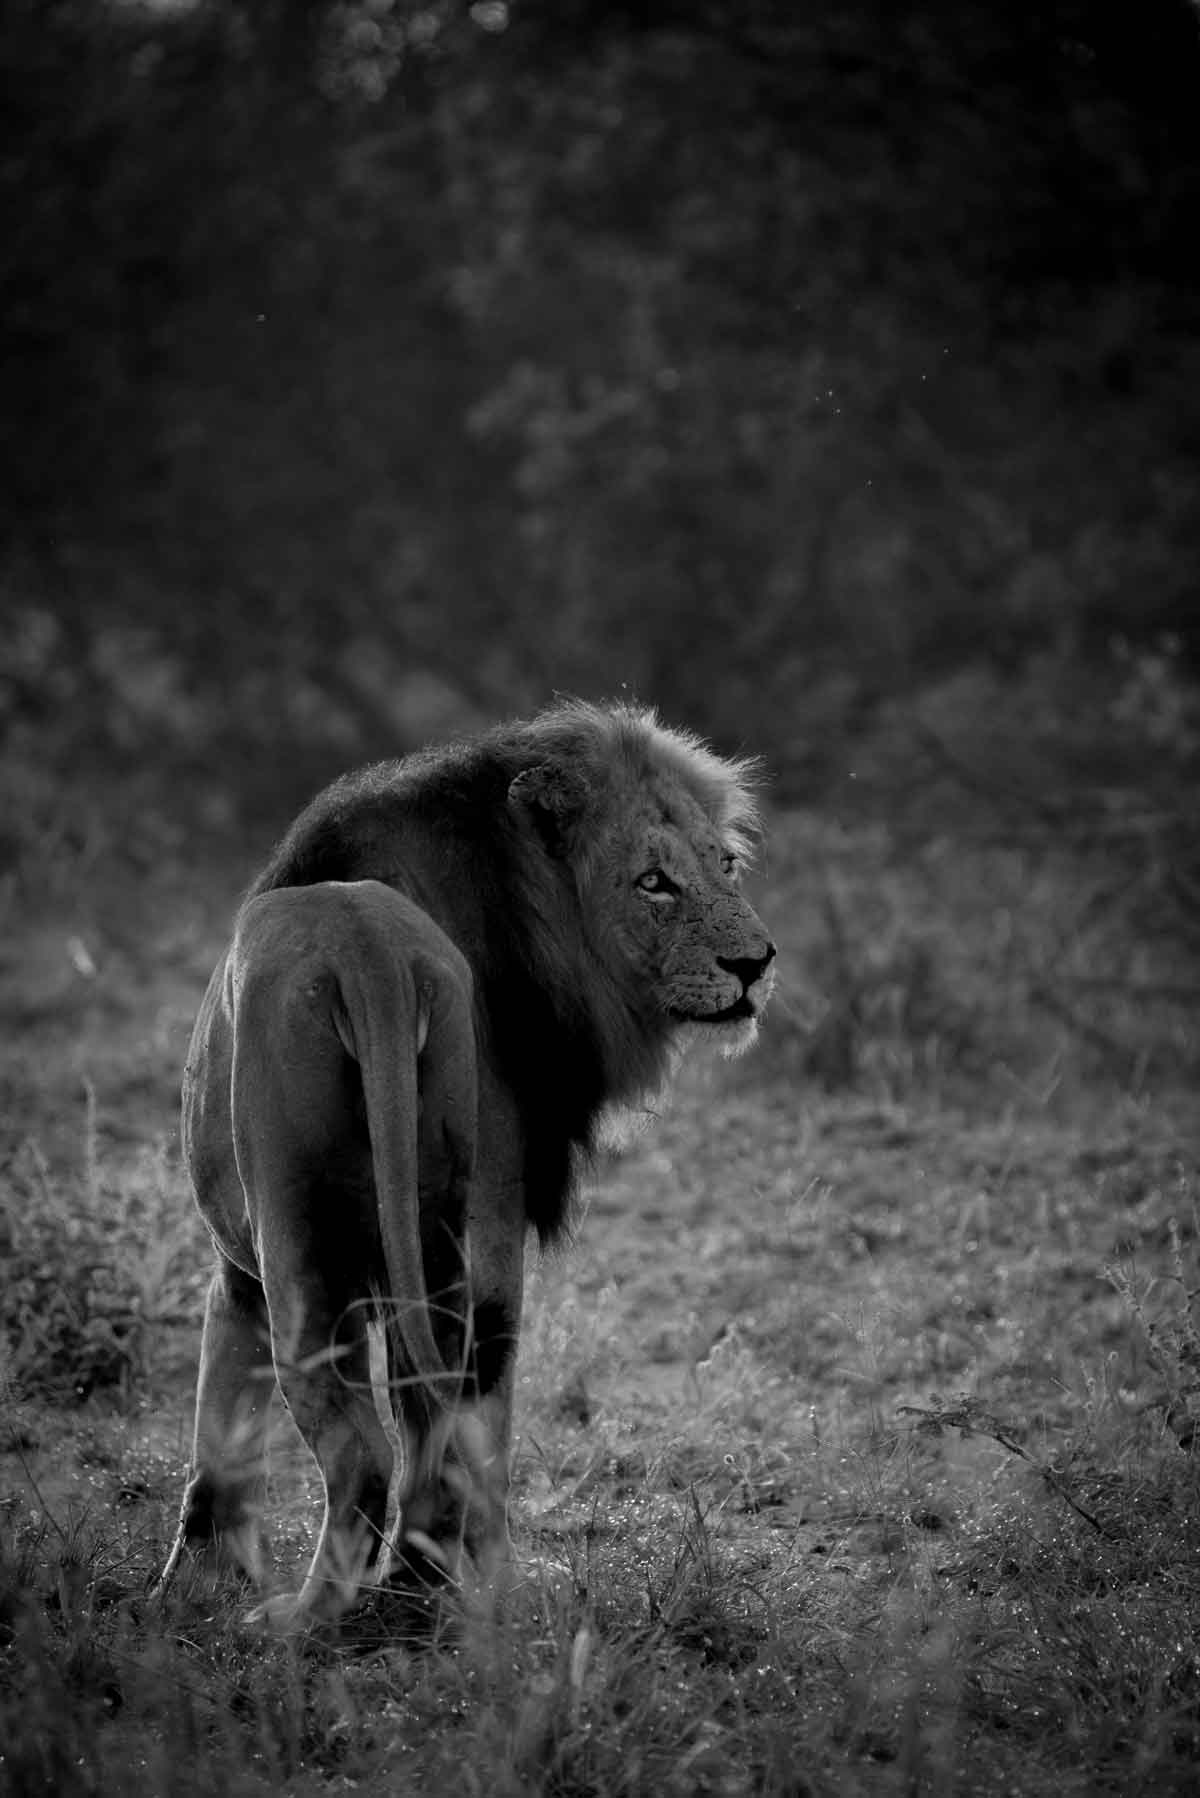 Male Lion in the Wild - Kevin MacLaughlin